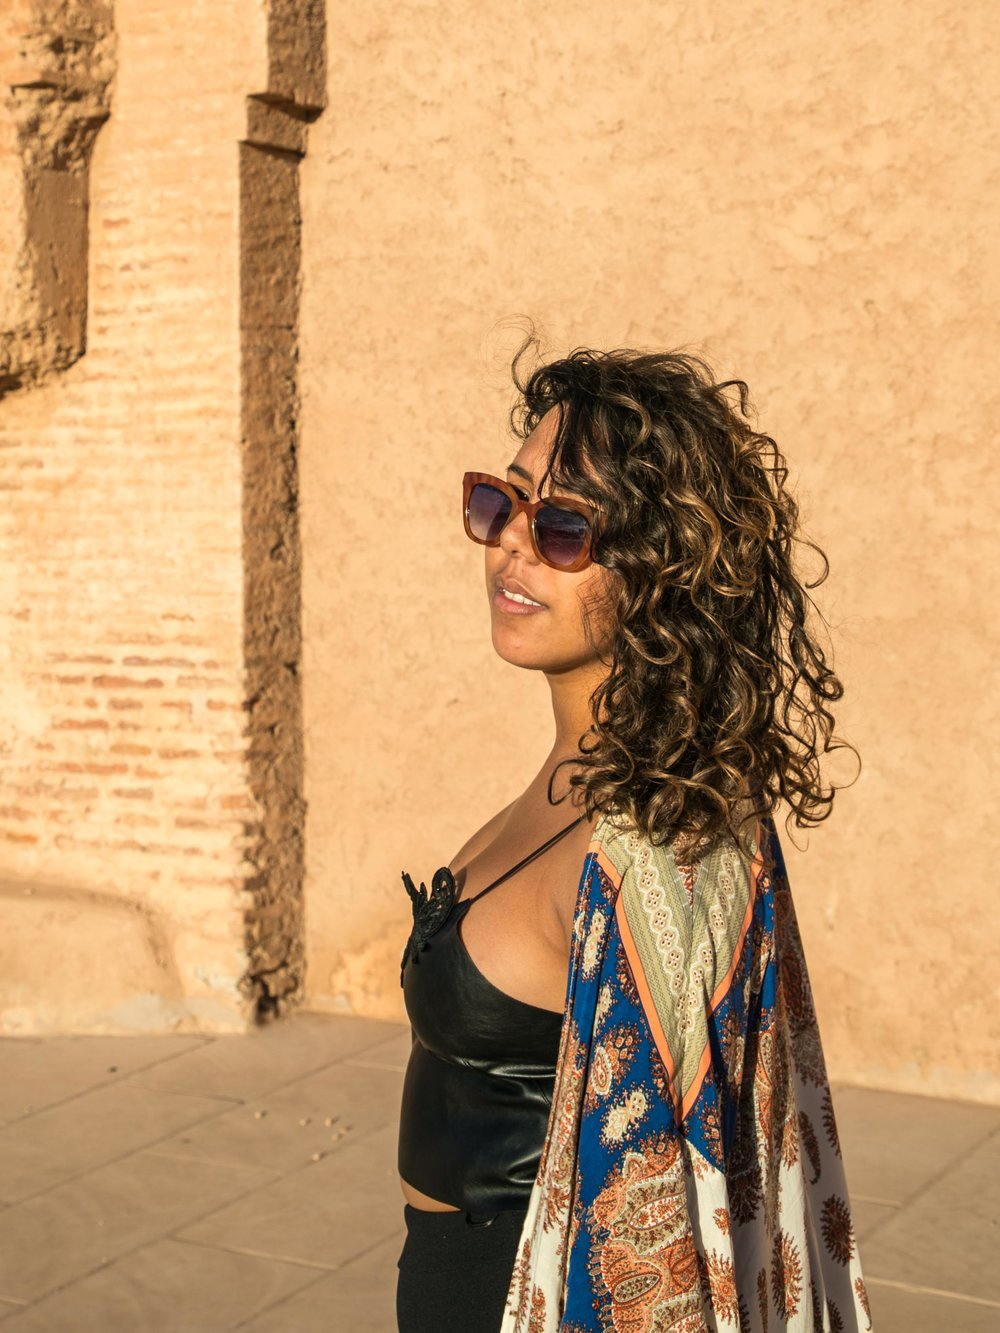 Alysha - @alyshasharonp  co-organized #honeysinmarrakech